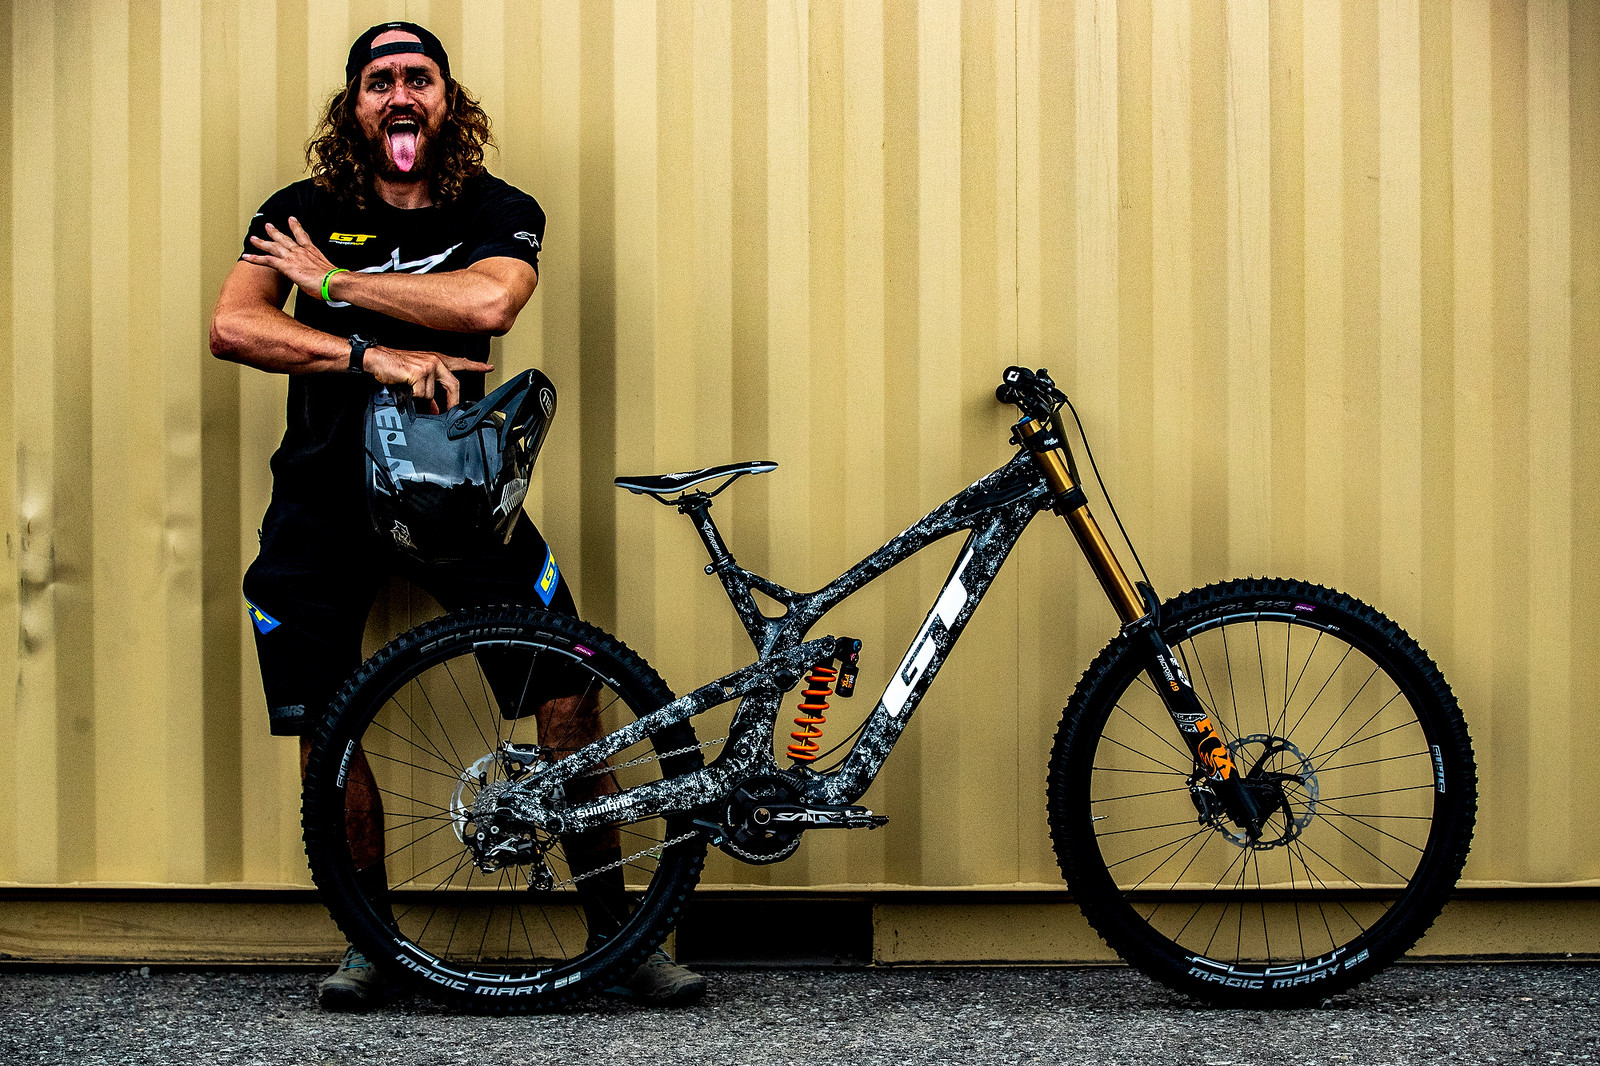 Wyn Masters with His GT Fury For World Championships - GT Bicycles World Championships DH Race Bikes - Mountain Biking Pictures - Vital MTB